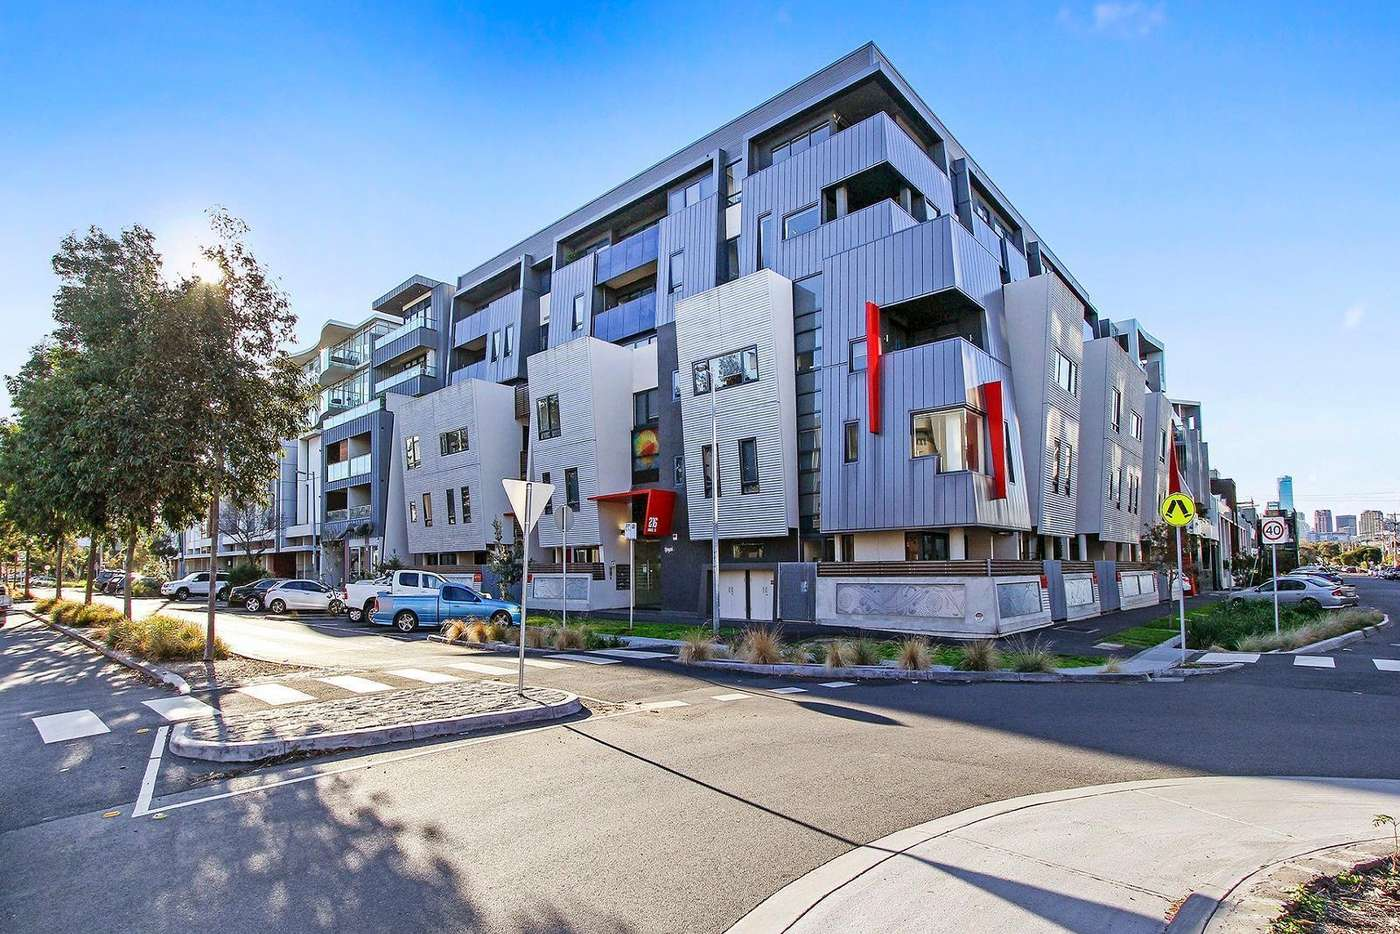 Main view of Homely apartment listing, 304/216 Rouse Street, Port Melbourne VIC 3207